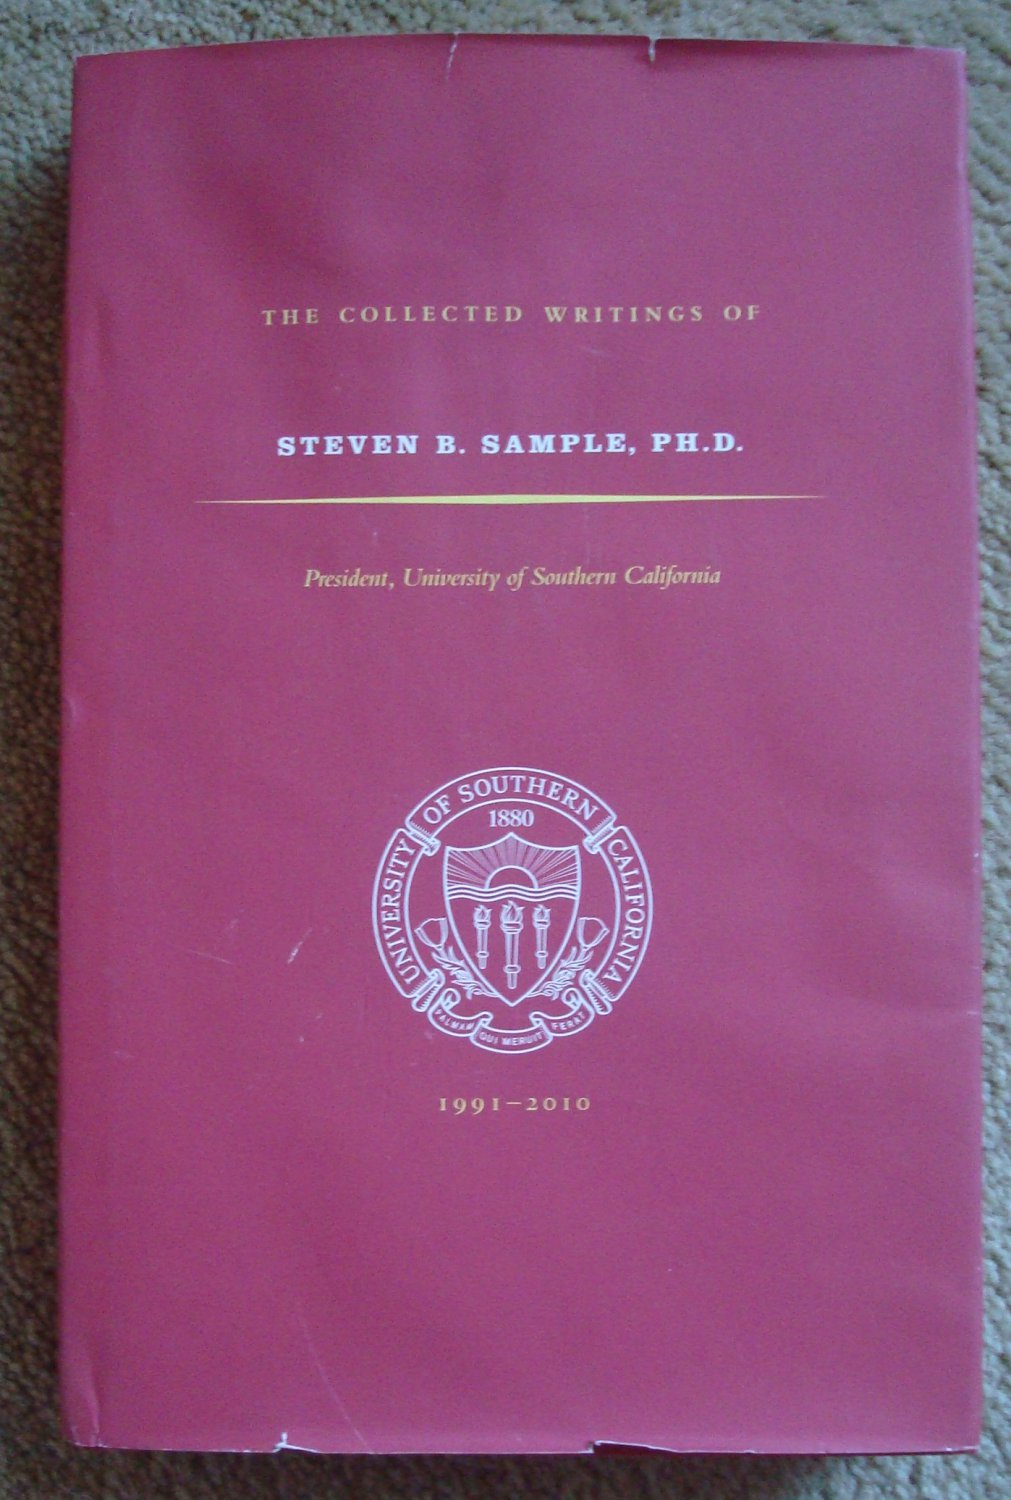 The Collected Writings of Steven B. Sample, Ph.D.